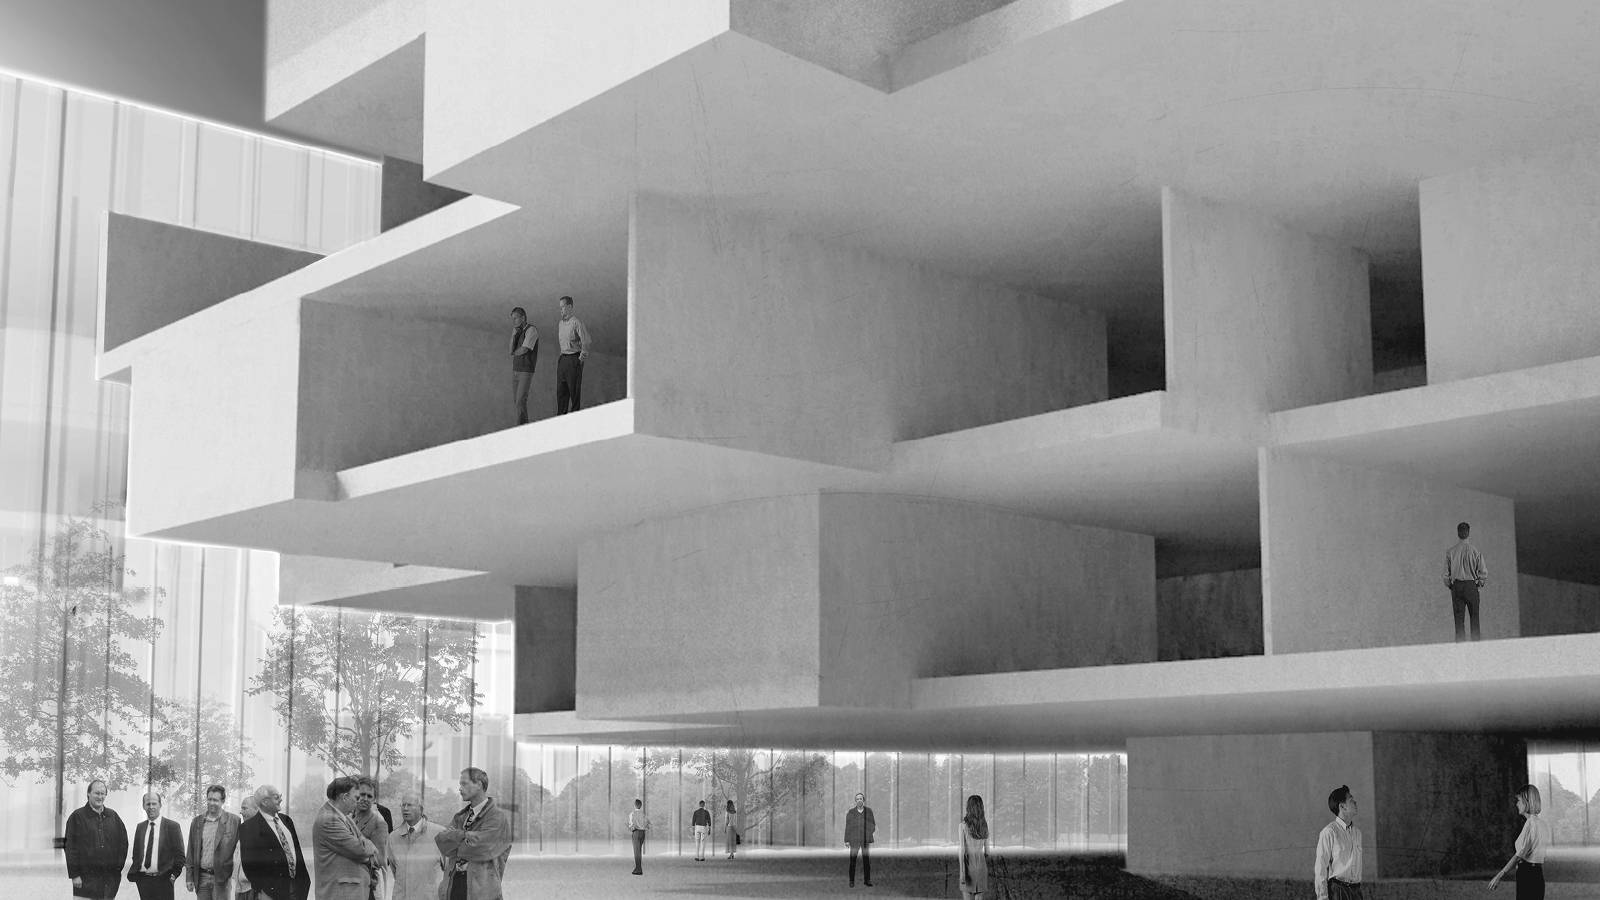 INTERIOR PERSPECTIVE - NEW AARCH – CREATIVE CLOUD - SPOL Architects